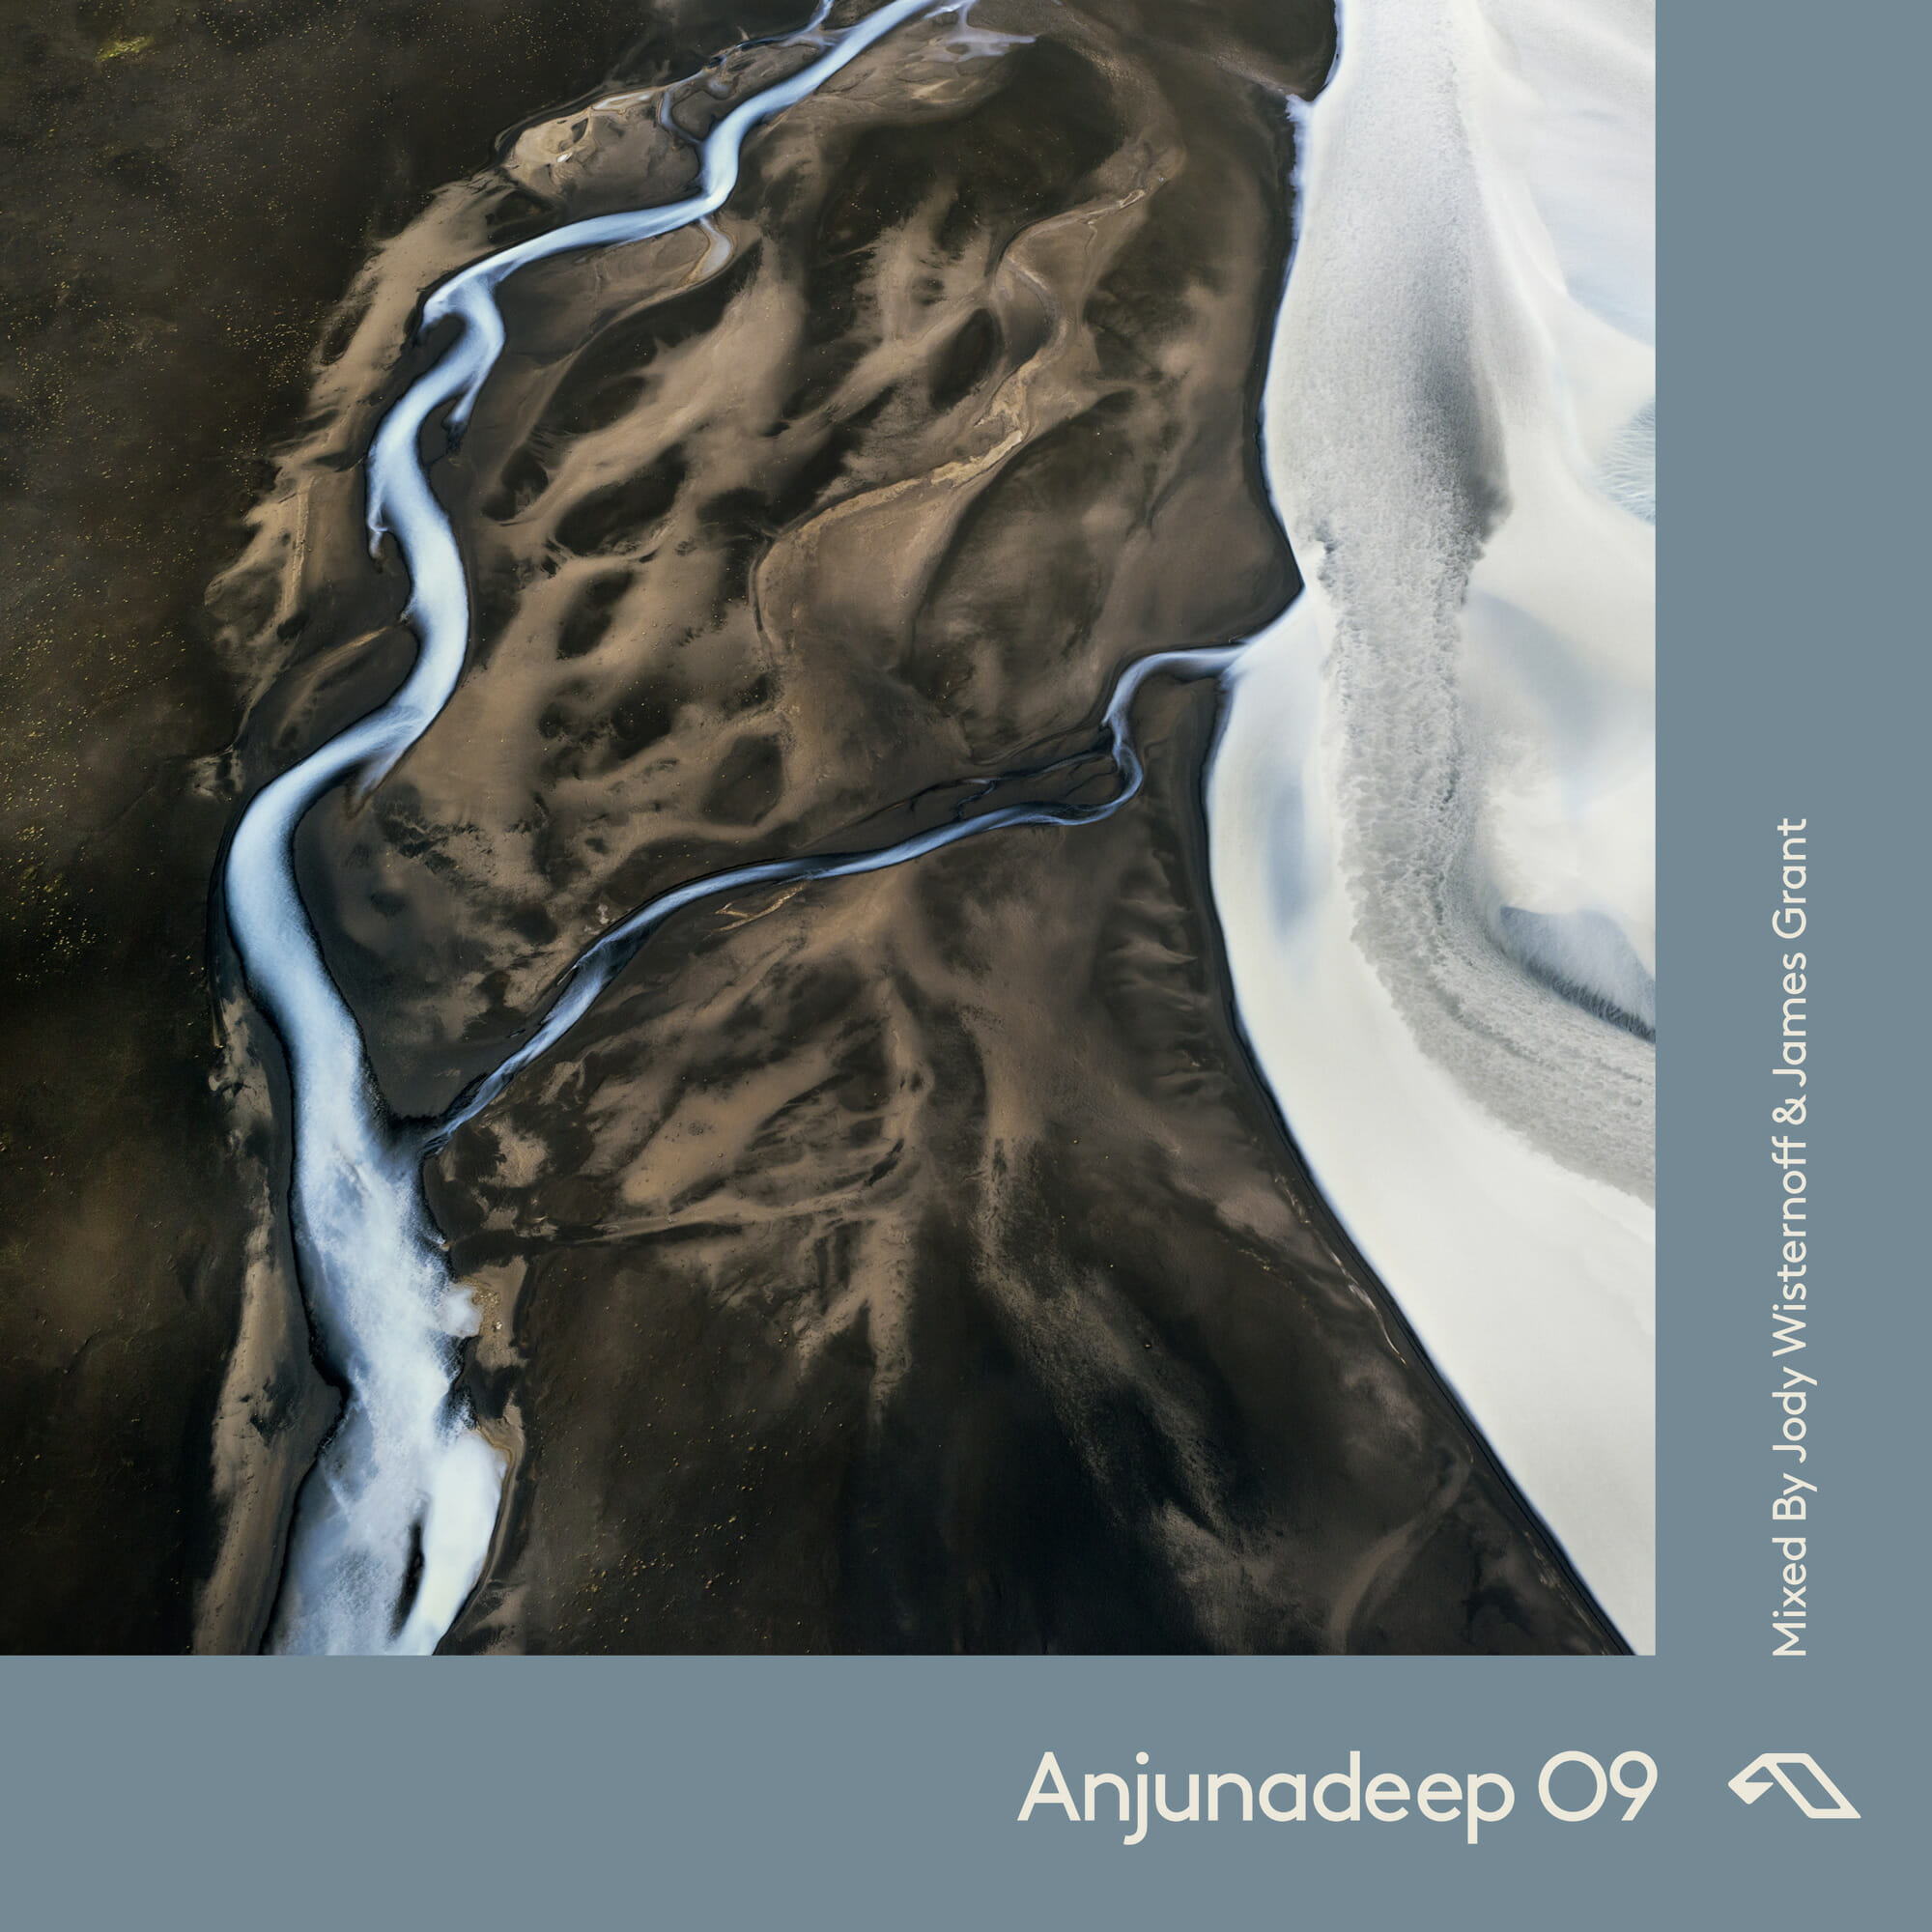 Dusky, Yotto, & more to appear on new Anjunadeep compilationAnjunadeep O9 Packshot